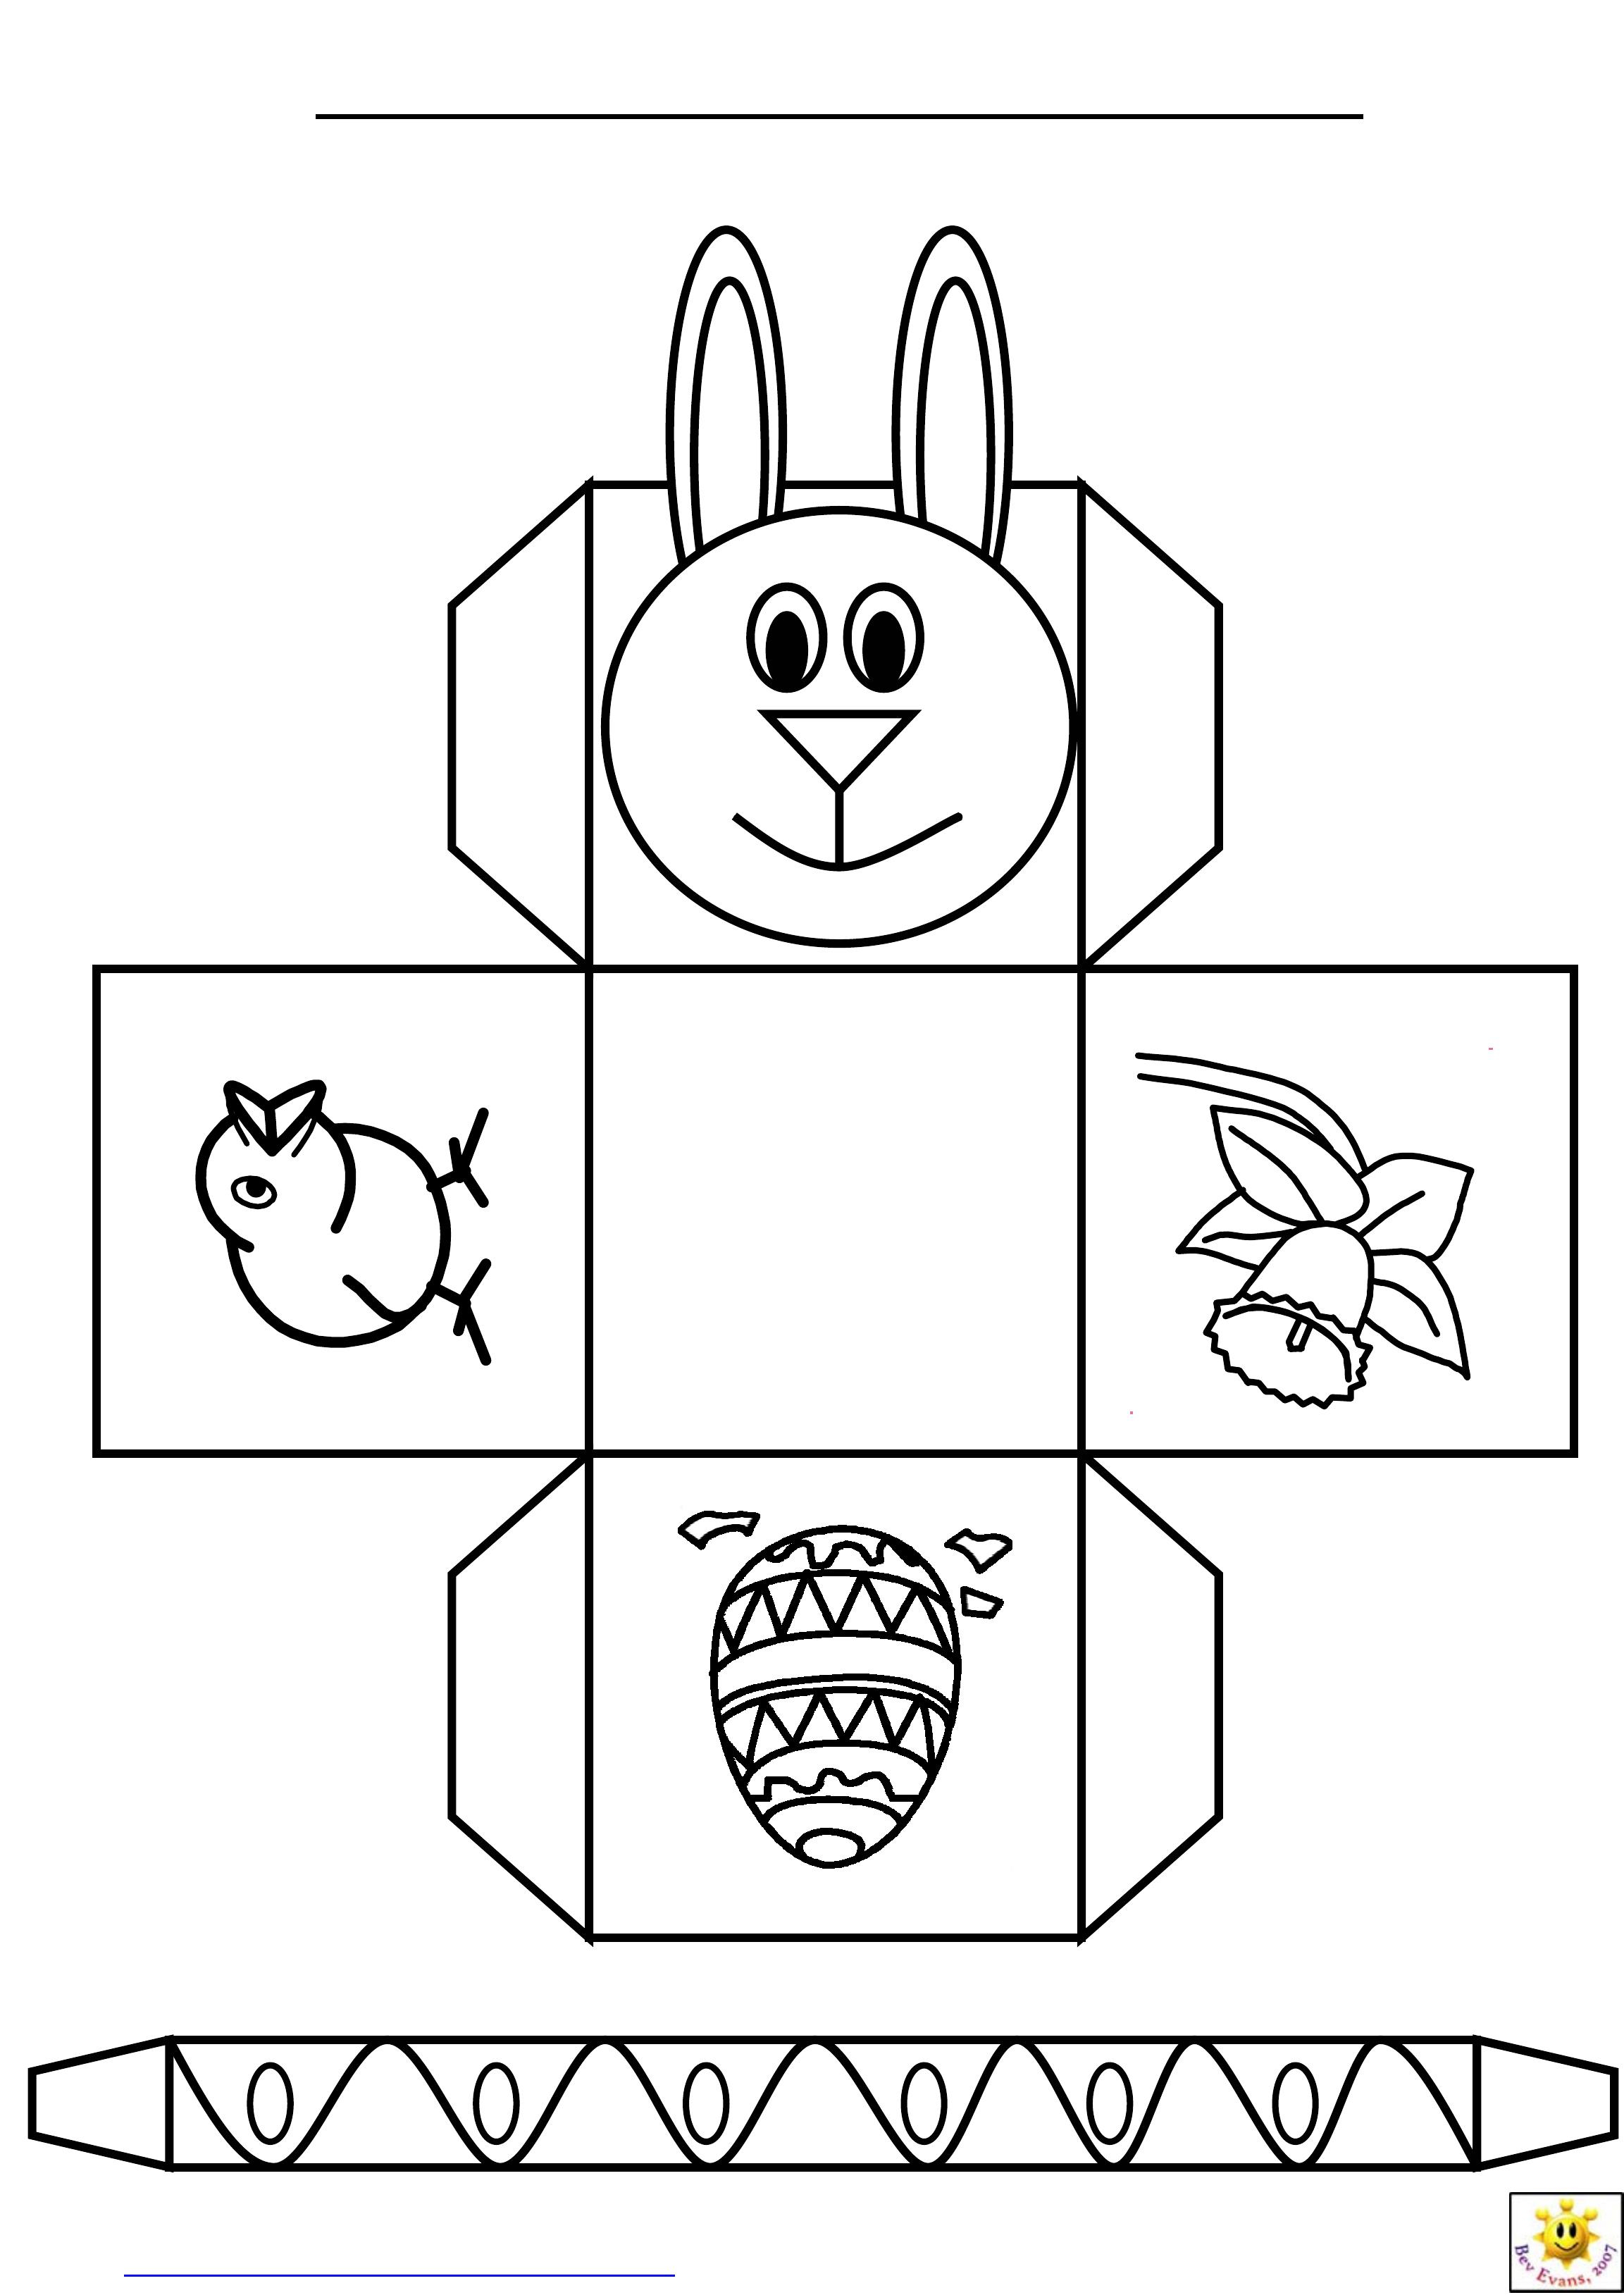 Easter Basket Templates Free – Hd Easter Images - Free Printable Easter Egg Basket Templates